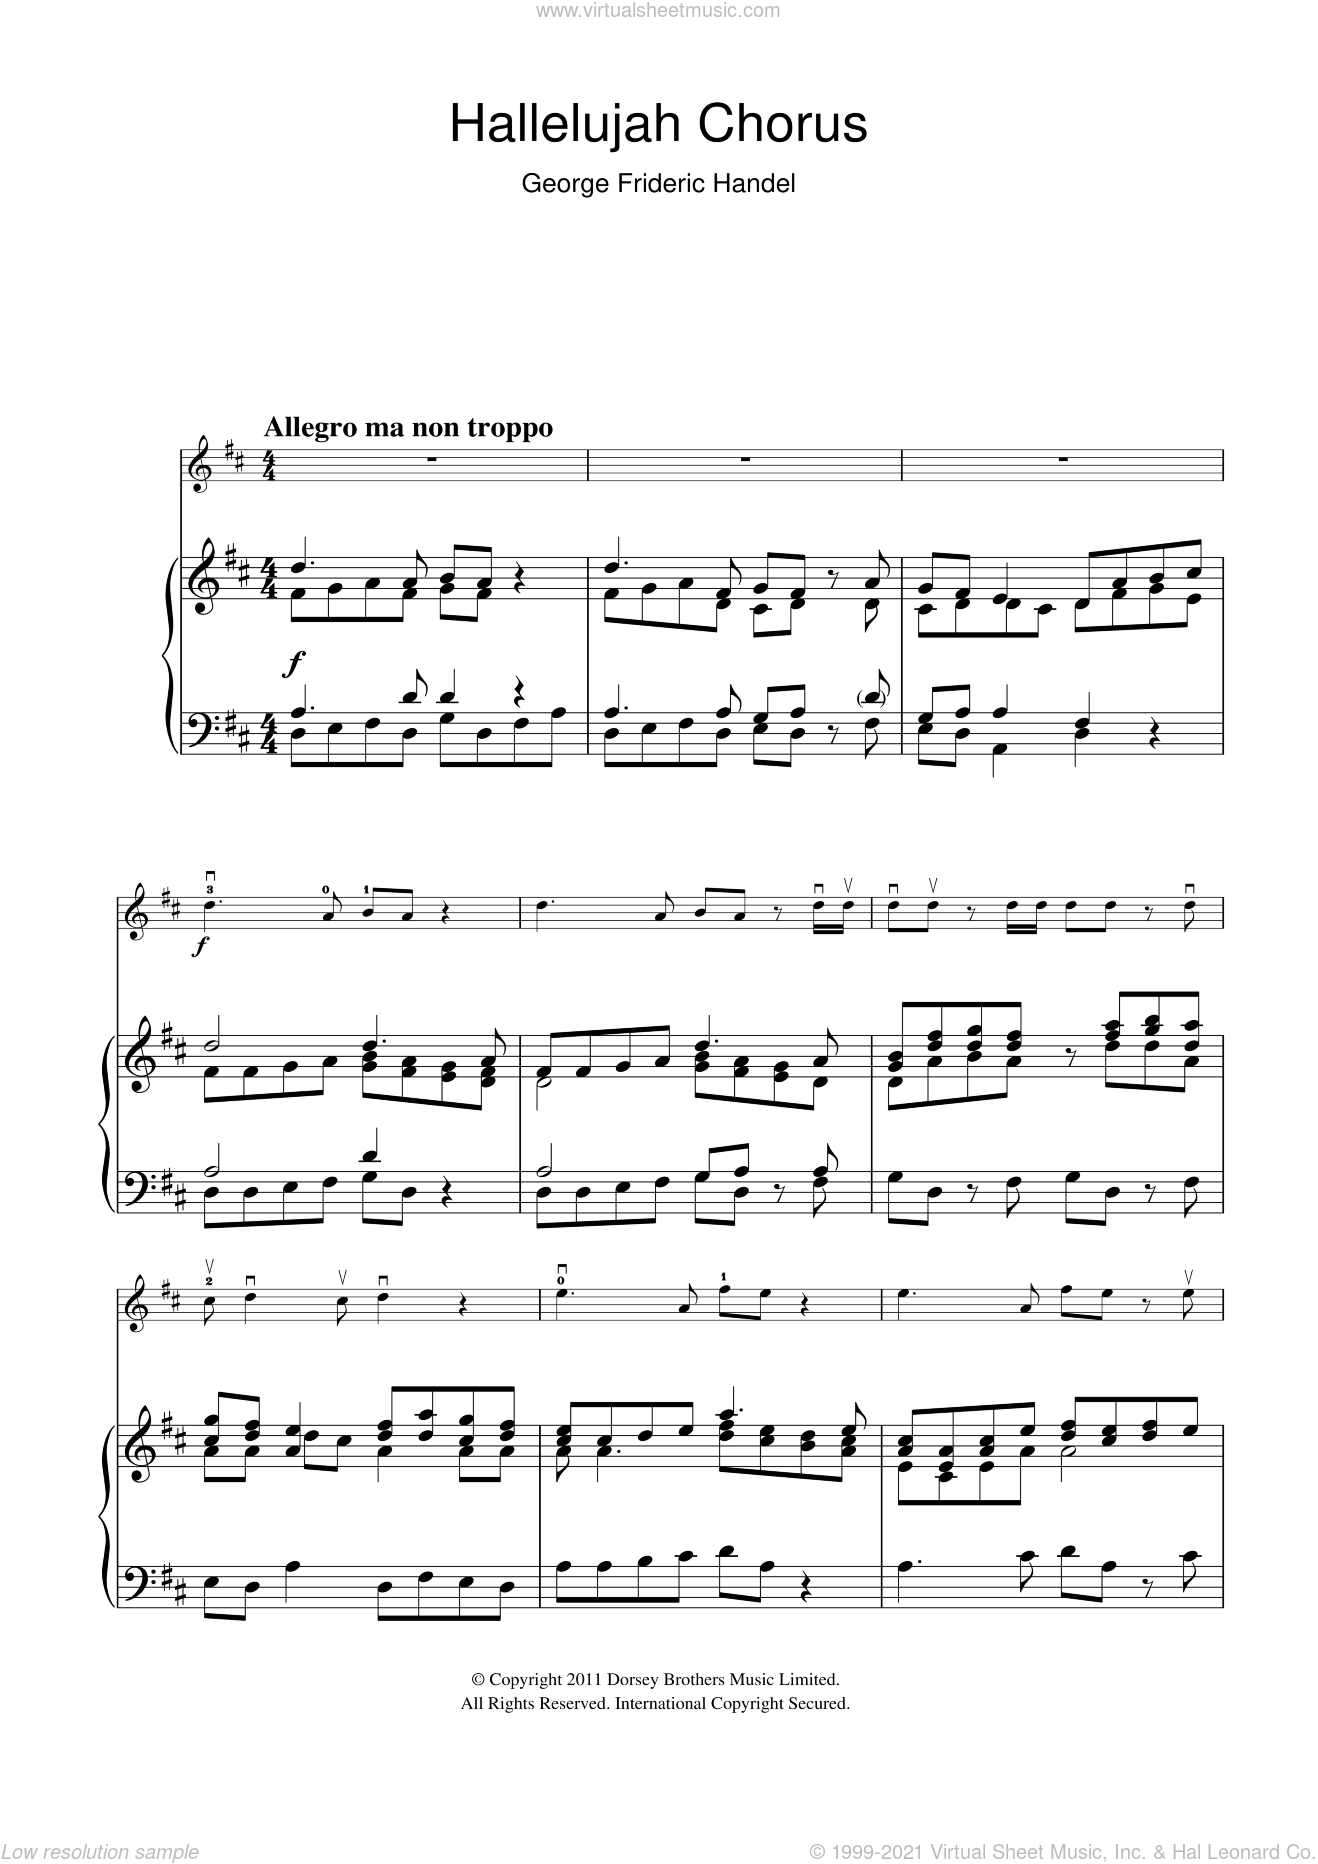 Hallelujah Chorus (from The Messiah) sheet music for violin solo by George Frideric Handel